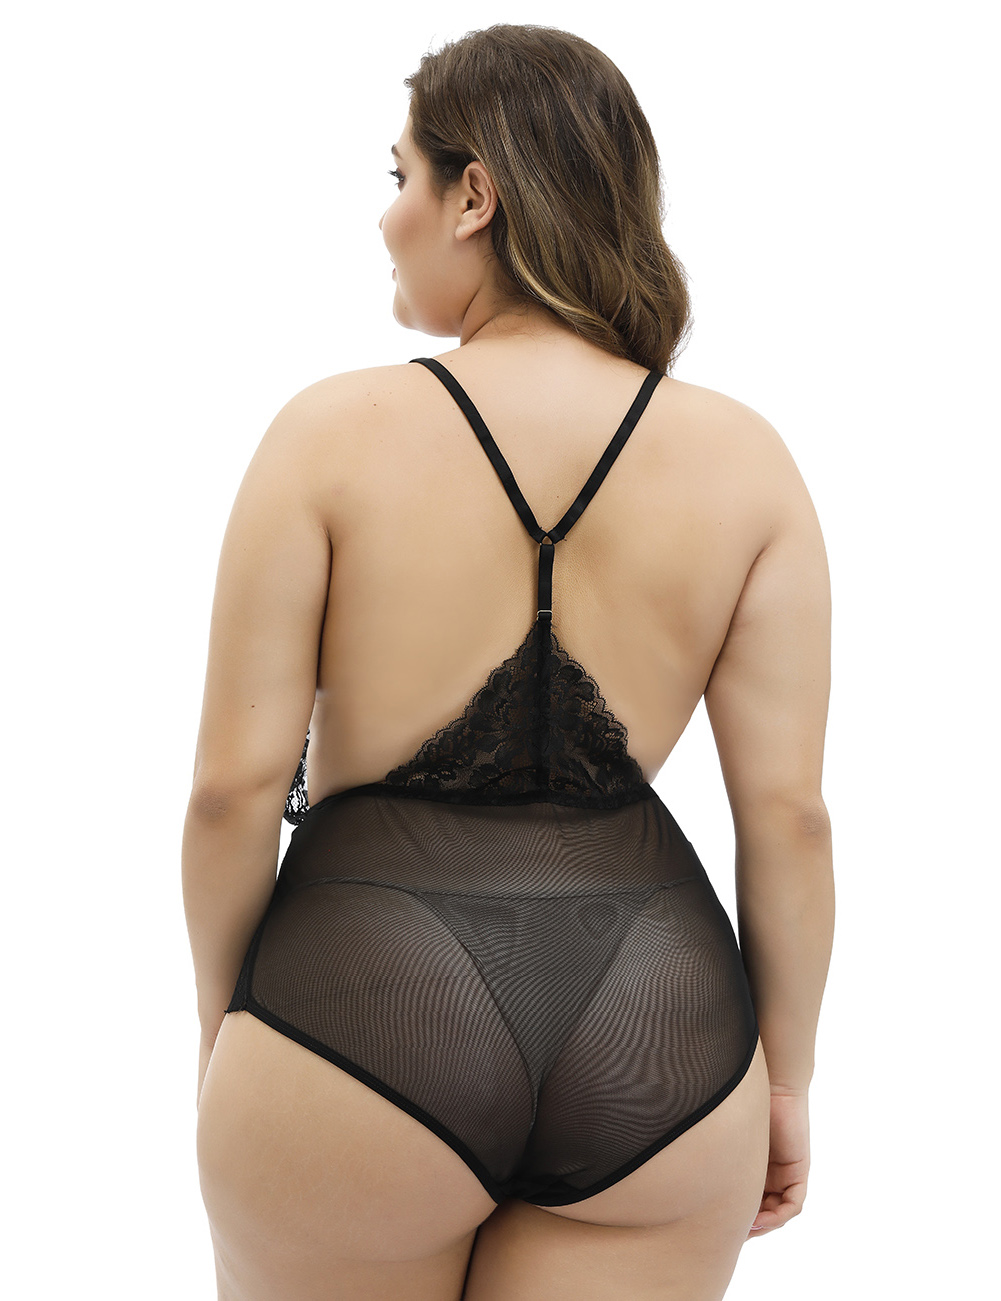 //cdn.affectcloud.com/hexinfashion/upload/imgs/PLUS_SIZE_CLOTHING/Plus_Size_Lingerie/SY190194-BK1/SY190194-BK1-202001075e1423f134708.jpg